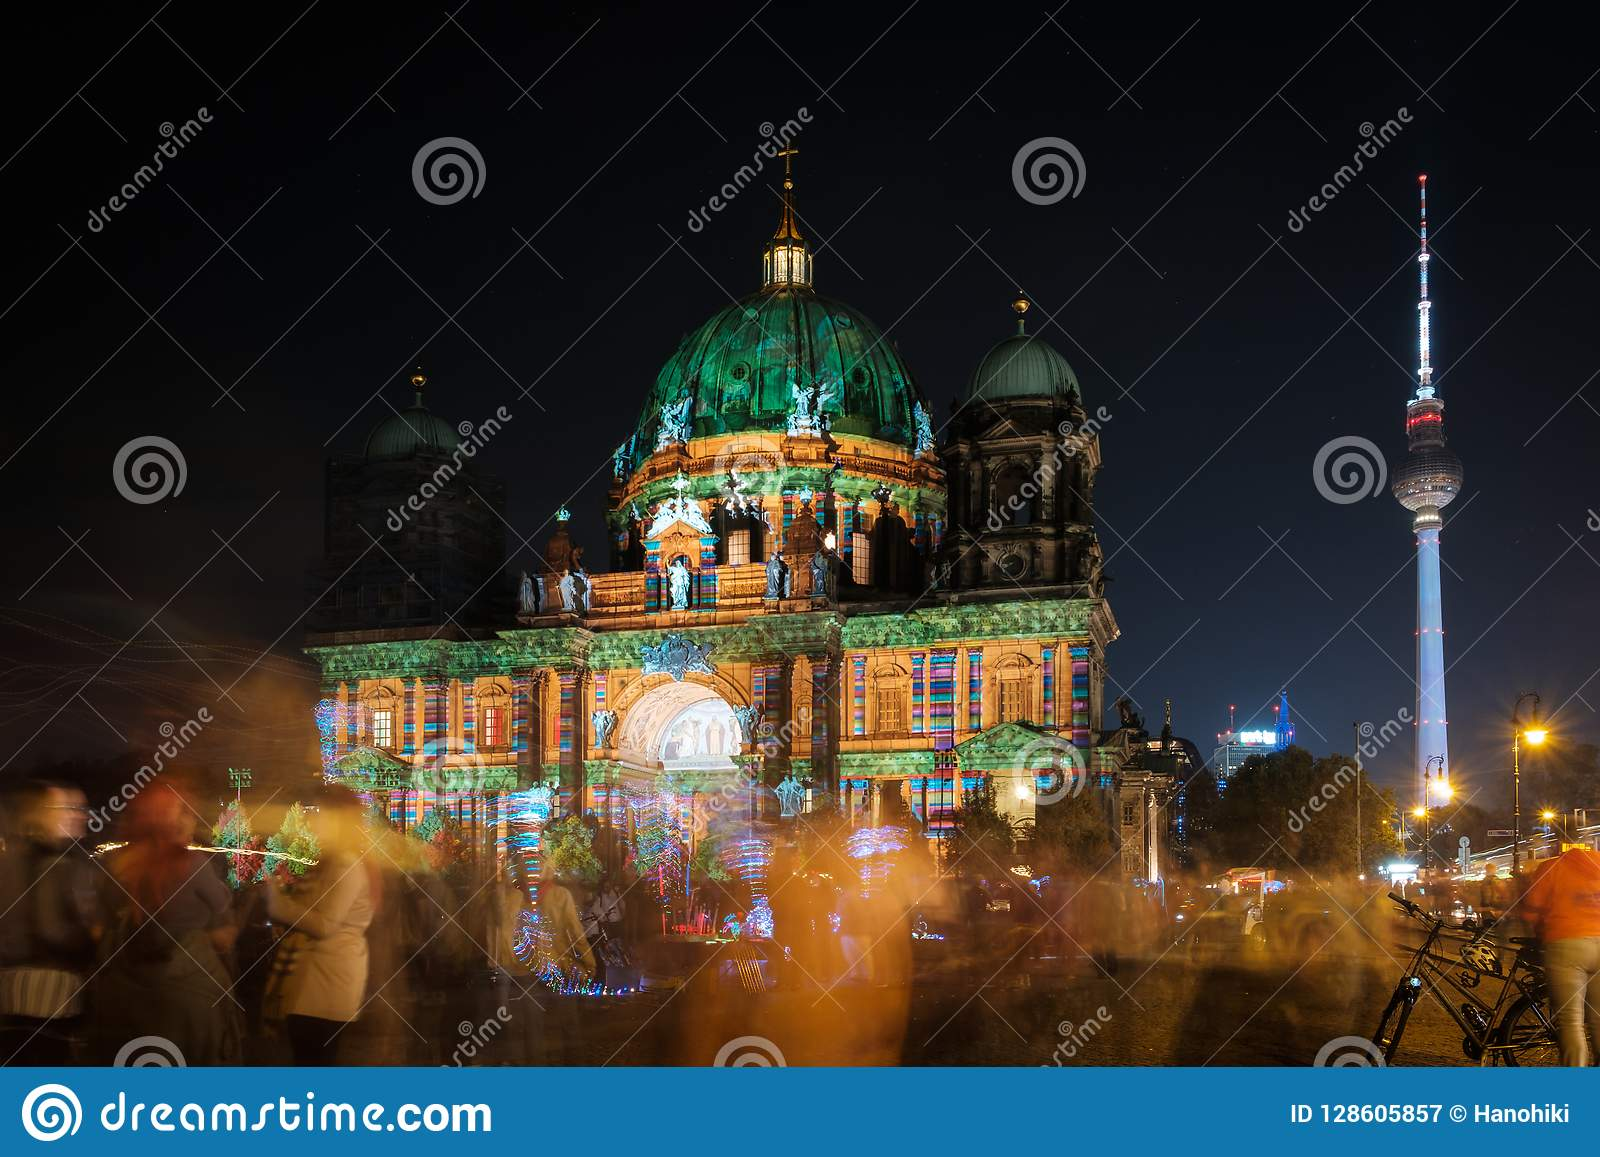 Illuminated Landmark Berlin Cathedral Berliner Dom At Night Editorial Photography Image Of Celebration Colorful 128605857